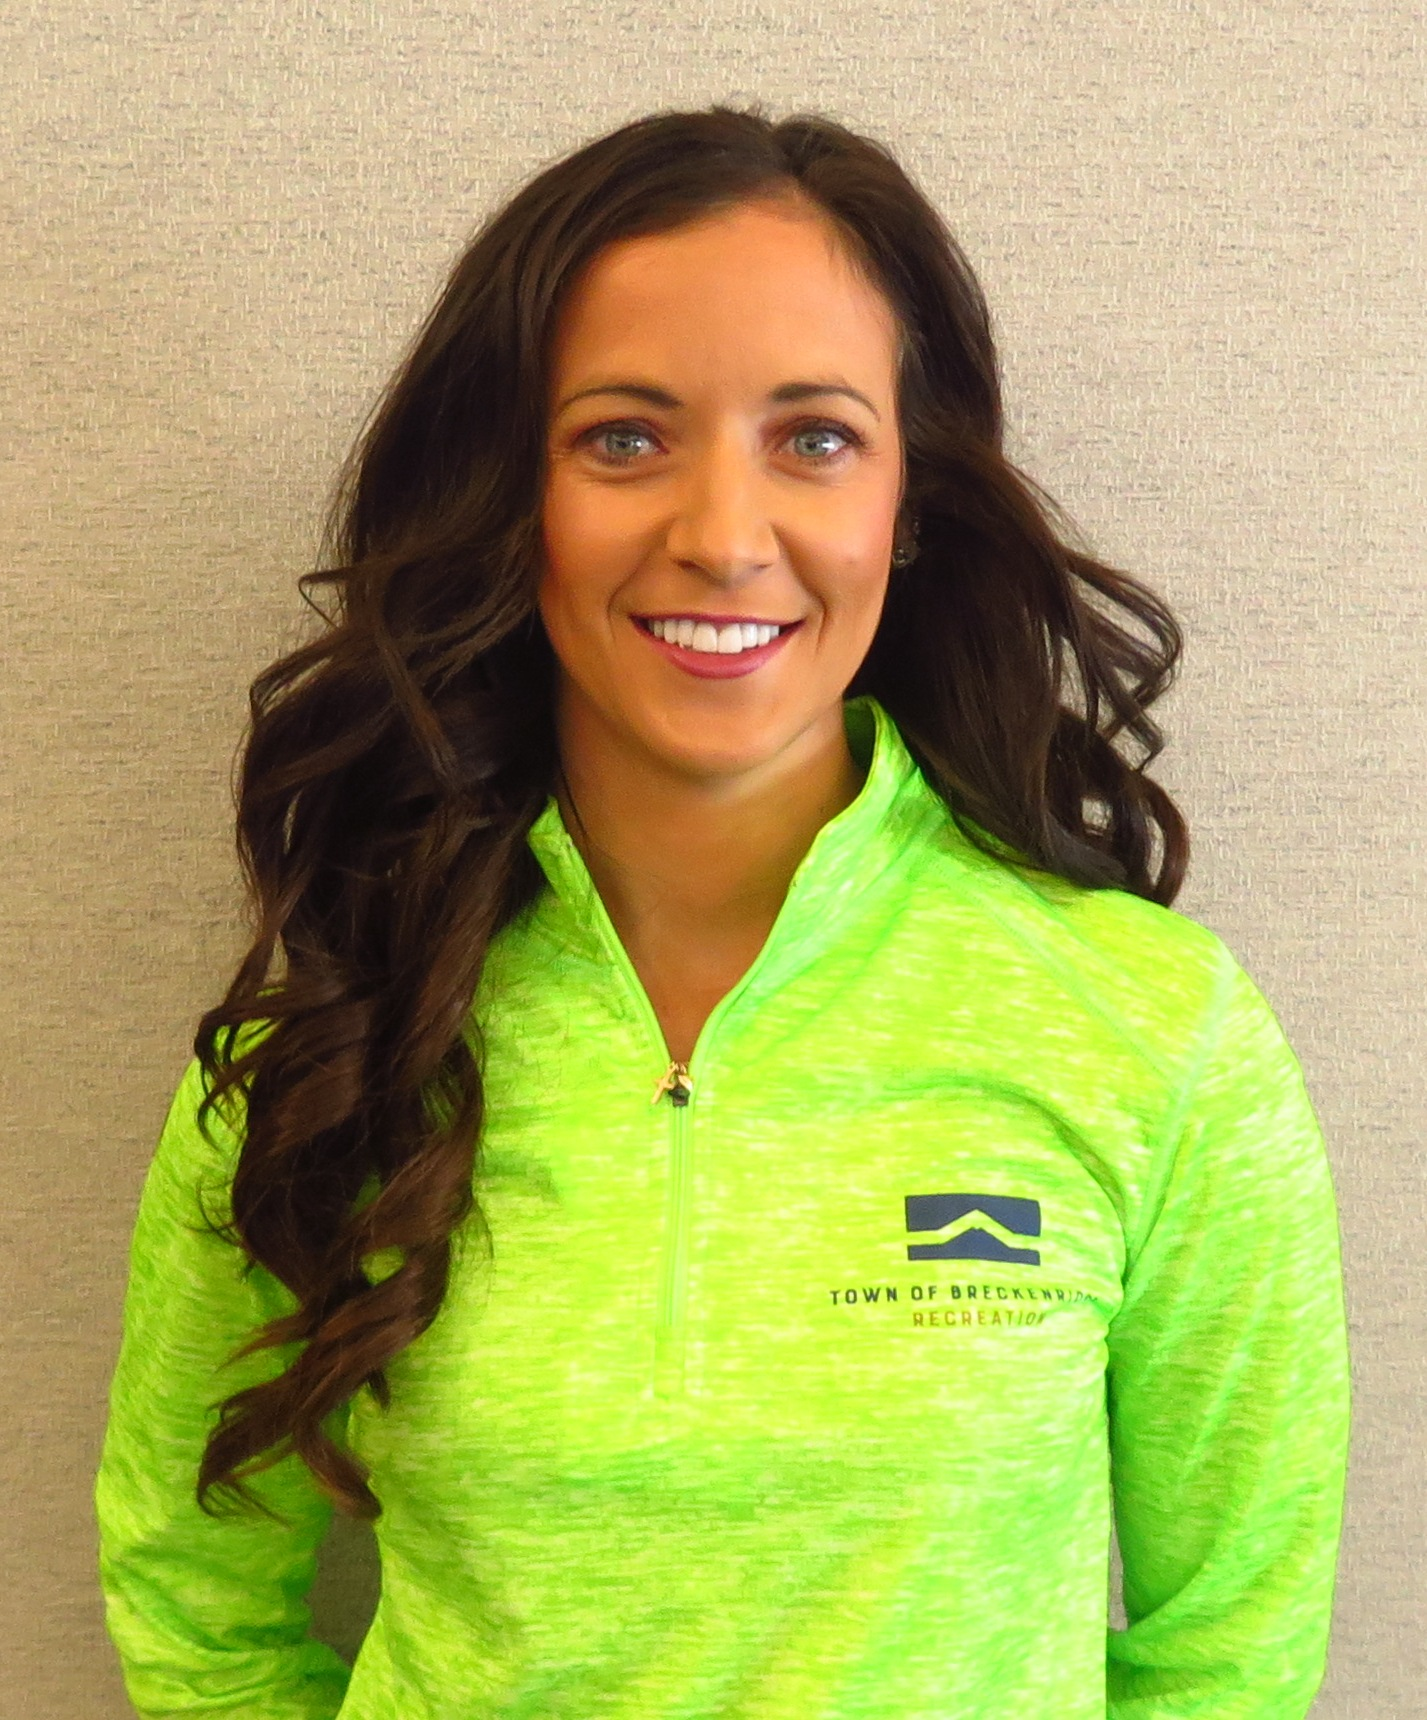 Head shot of Linzee Vito Breckenridge personal trainer in gree staff shirt